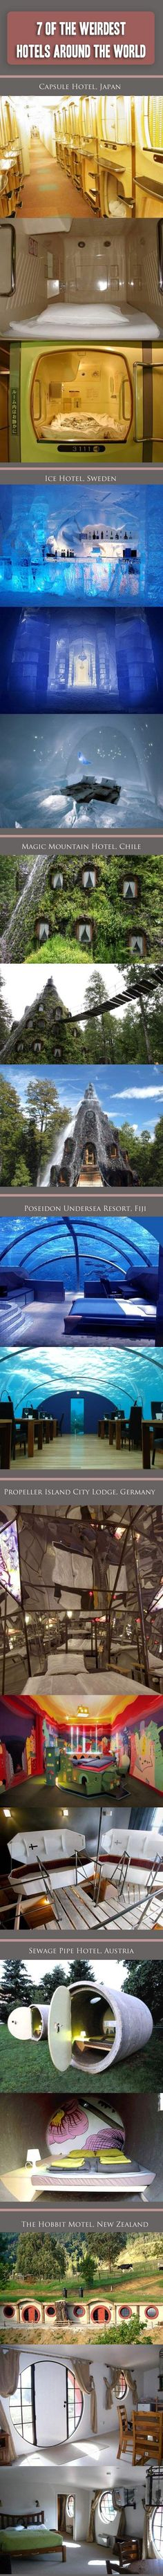 The weirdest hotels around the world鈥?But some of the awesomest!